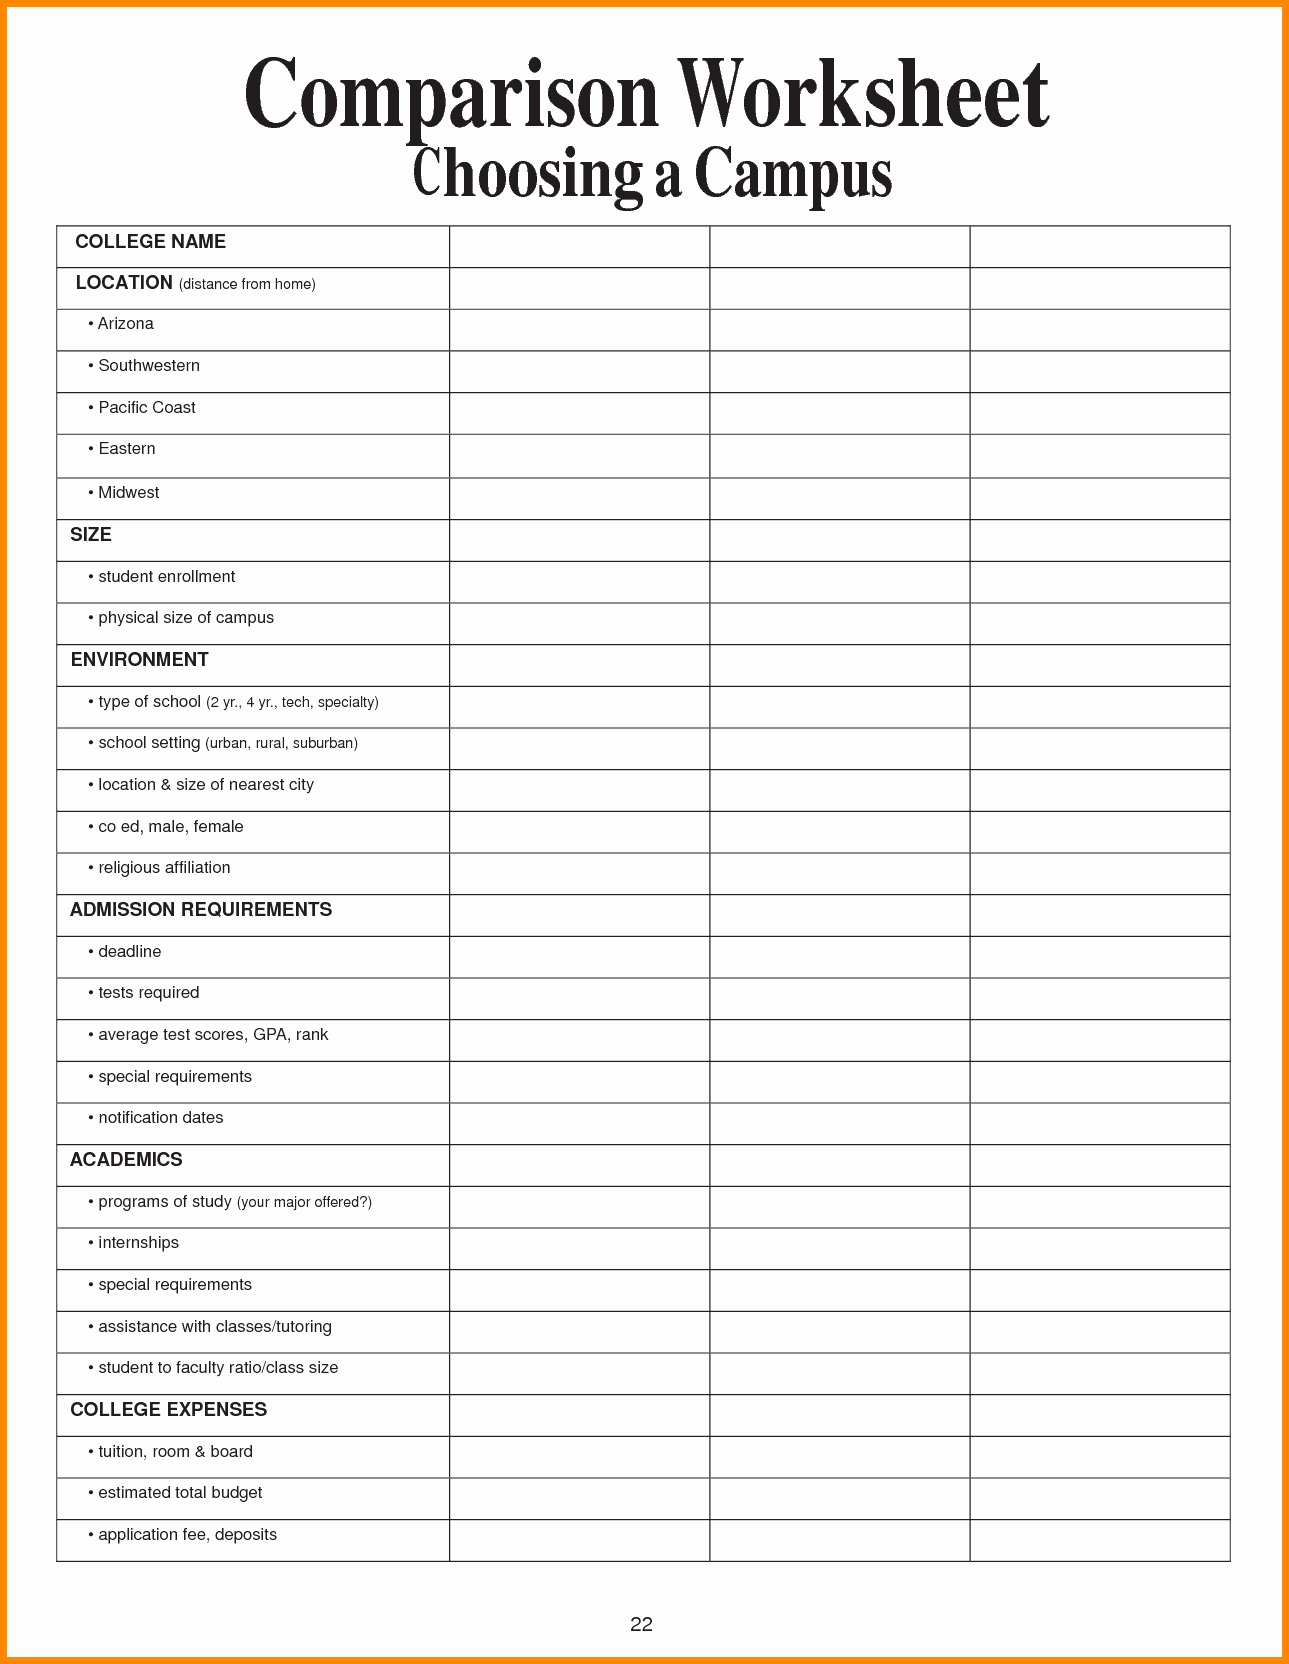 College Comparison Spreadsheet Spreadsheet Software How To Create An | Printable College Comparison Worksheet